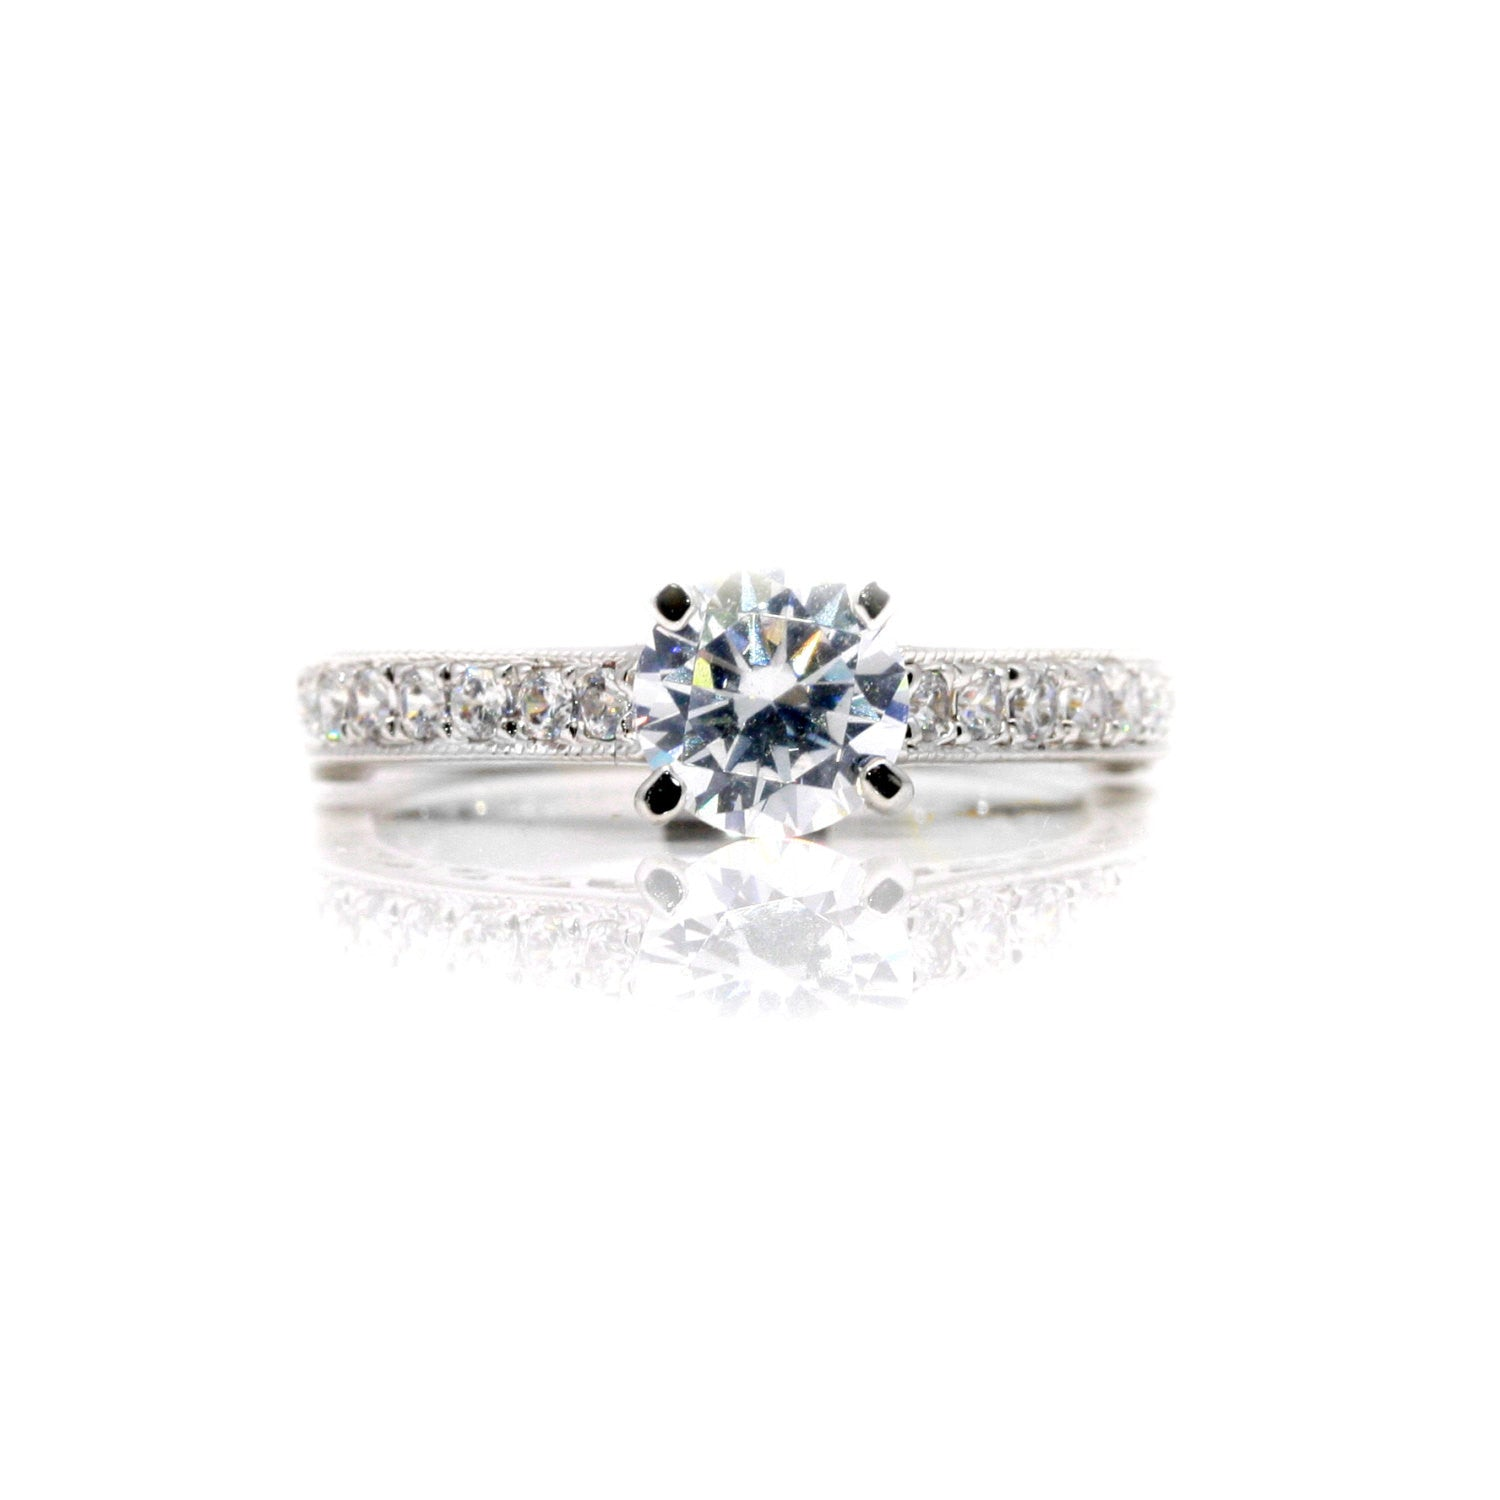 Moissanite Engagement Ring Wedding Set, Unique Style With 1 Carat Forever Brilliant Moissanite & 1.0 Carat Diamonds - FB76335